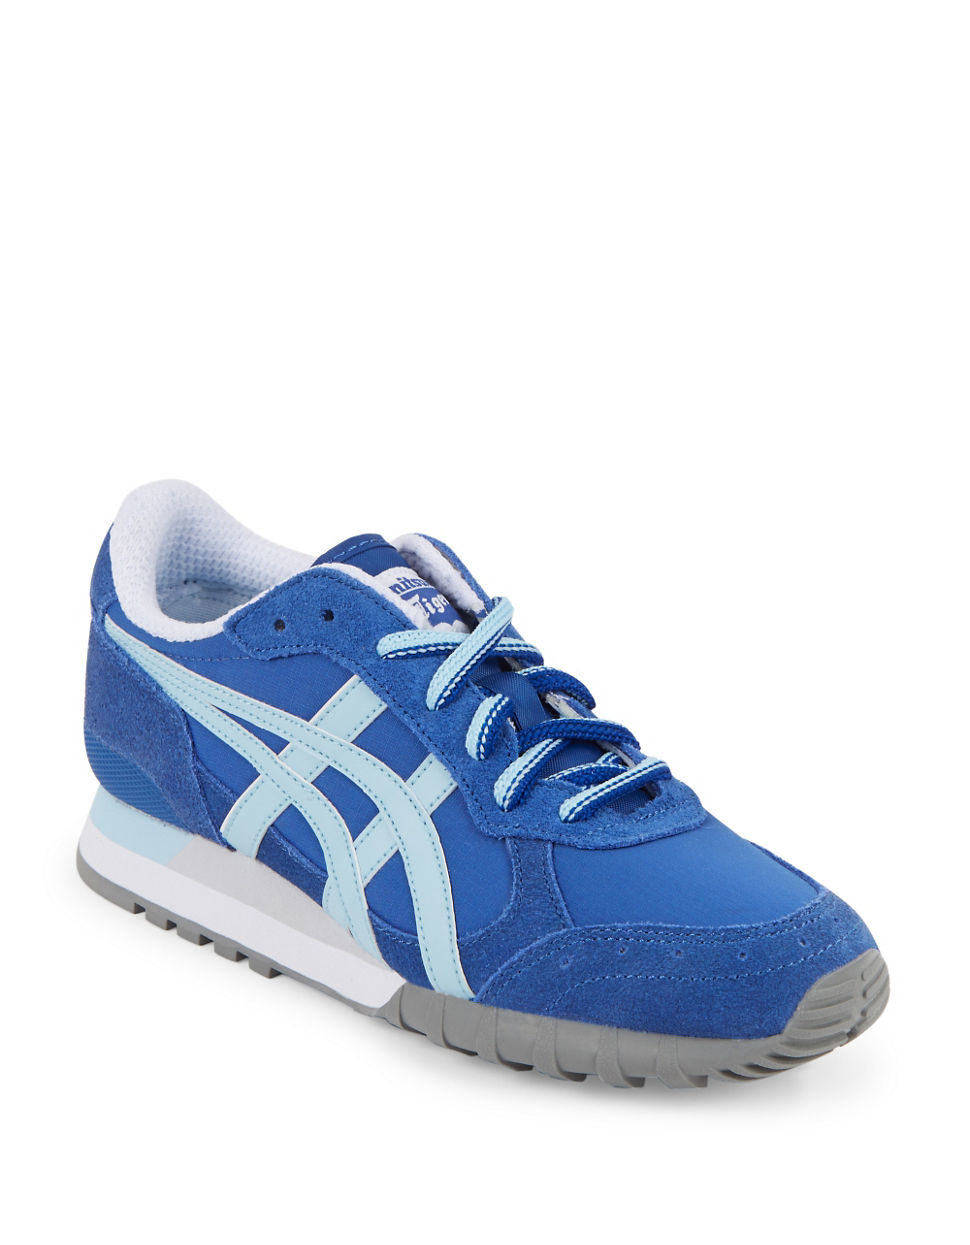 asics colorado lace up sneakers in blue for men lyst. Black Bedroom Furniture Sets. Home Design Ideas